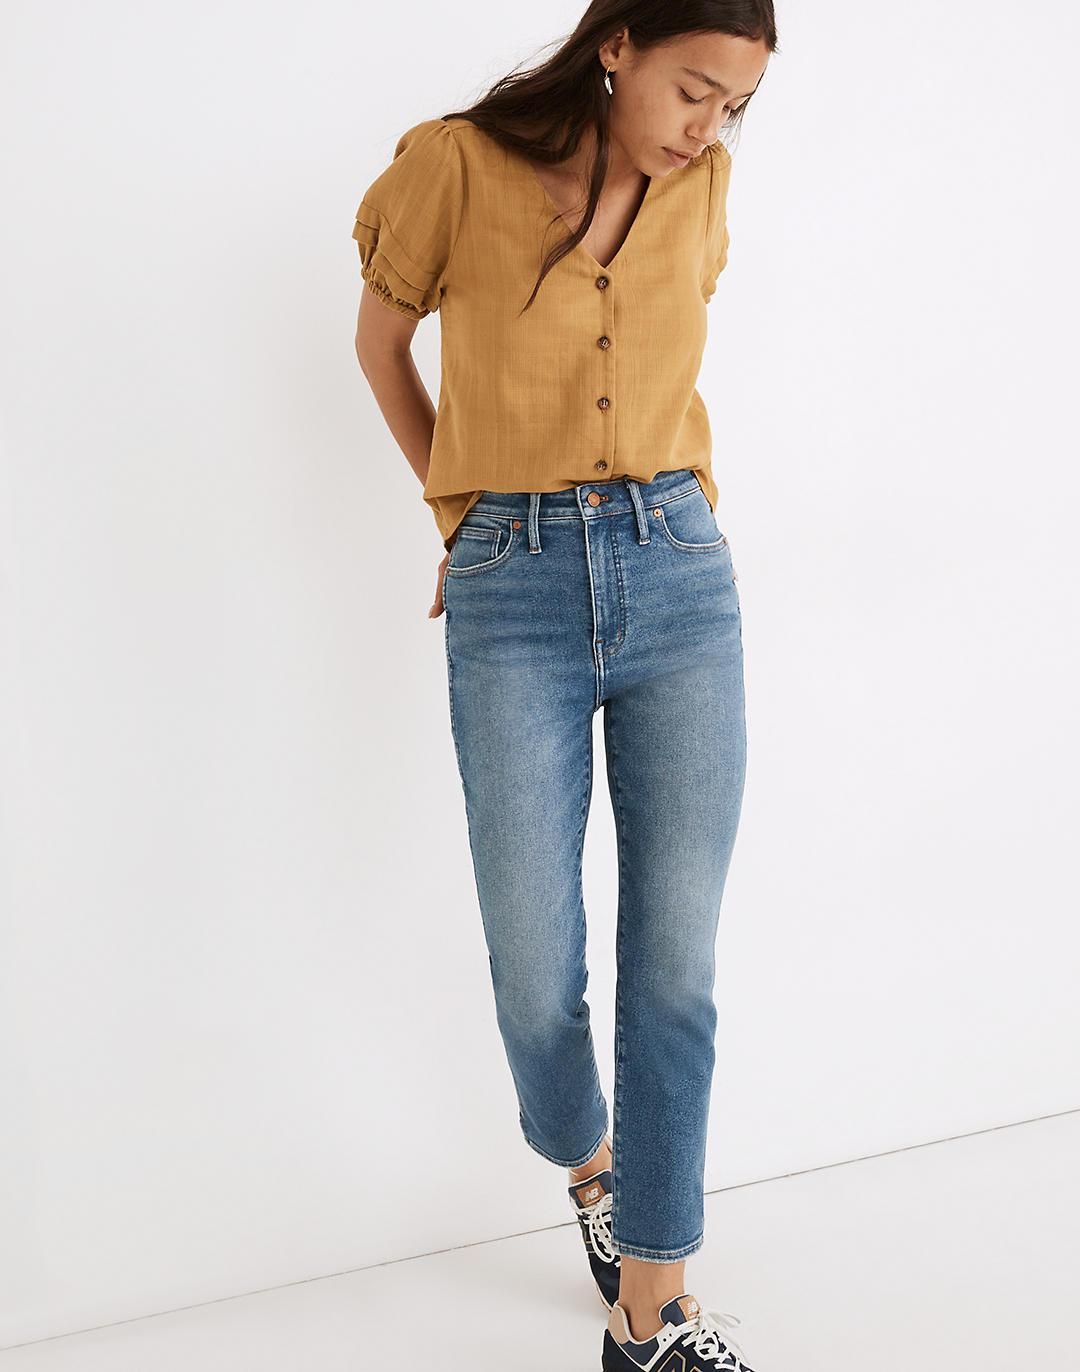 Petite Curvy Stovepipe Jeans in Ditmas Wash